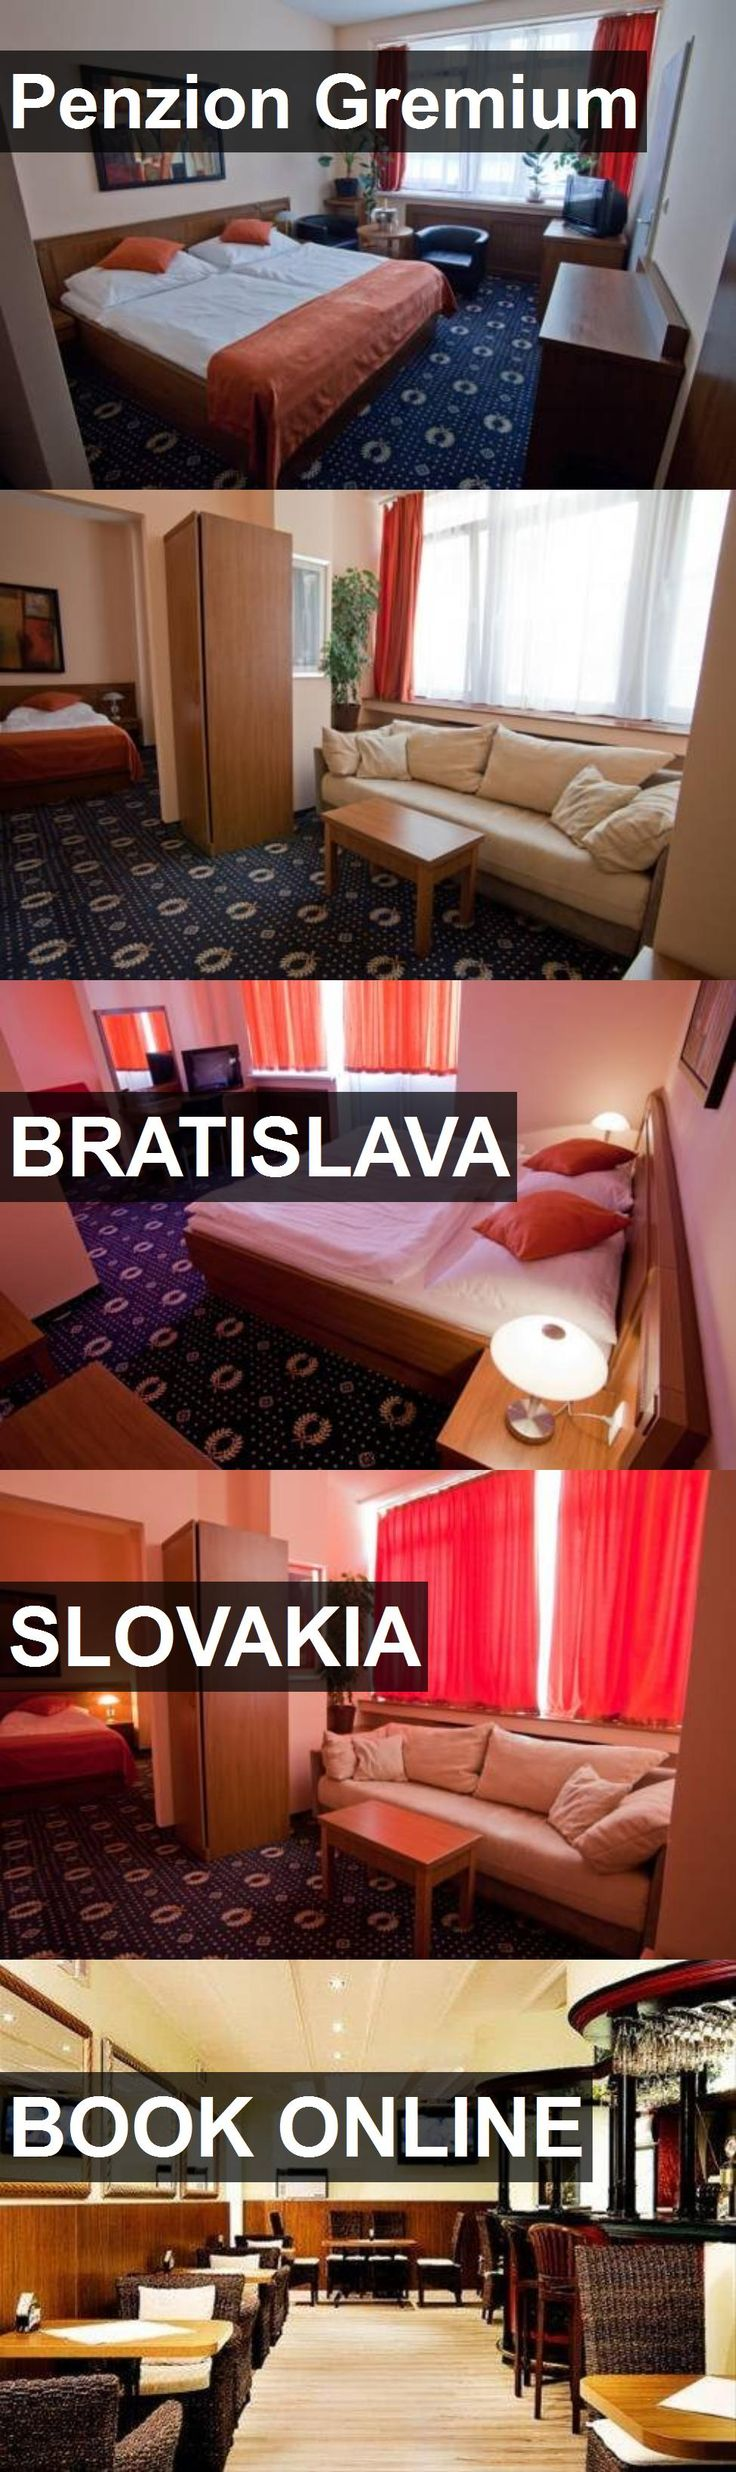 Hotel Penzion Gremium in Bratislava, Slovakia. For more information, photos, reviews and best prices please follow the link. #Slovakia #Bratislava #PenzionGremium #hotel #travel #vacation